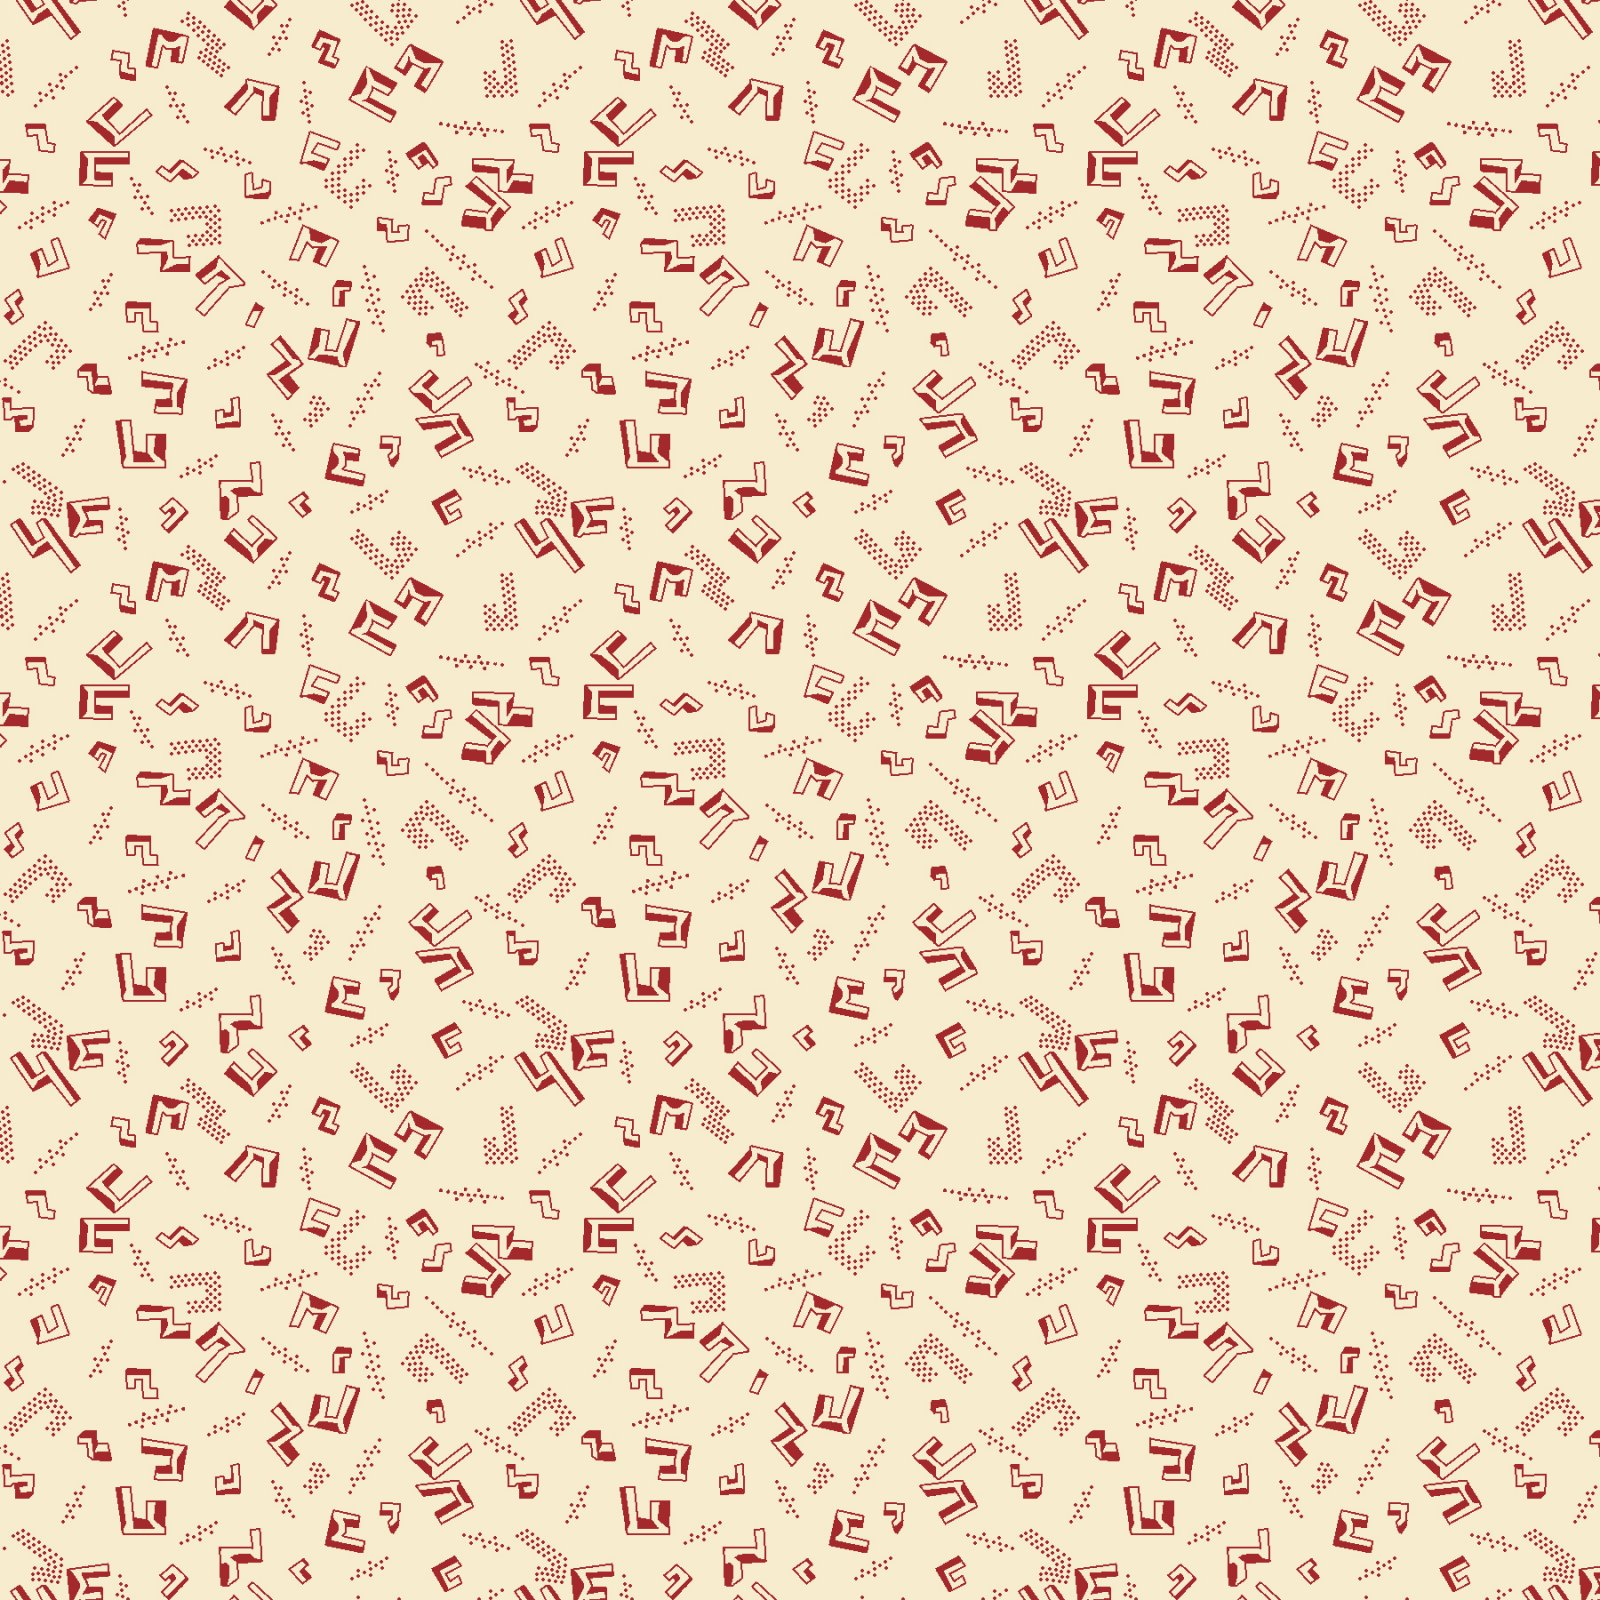 Buttermilk Winter - 2288-33 * 1/2 yard